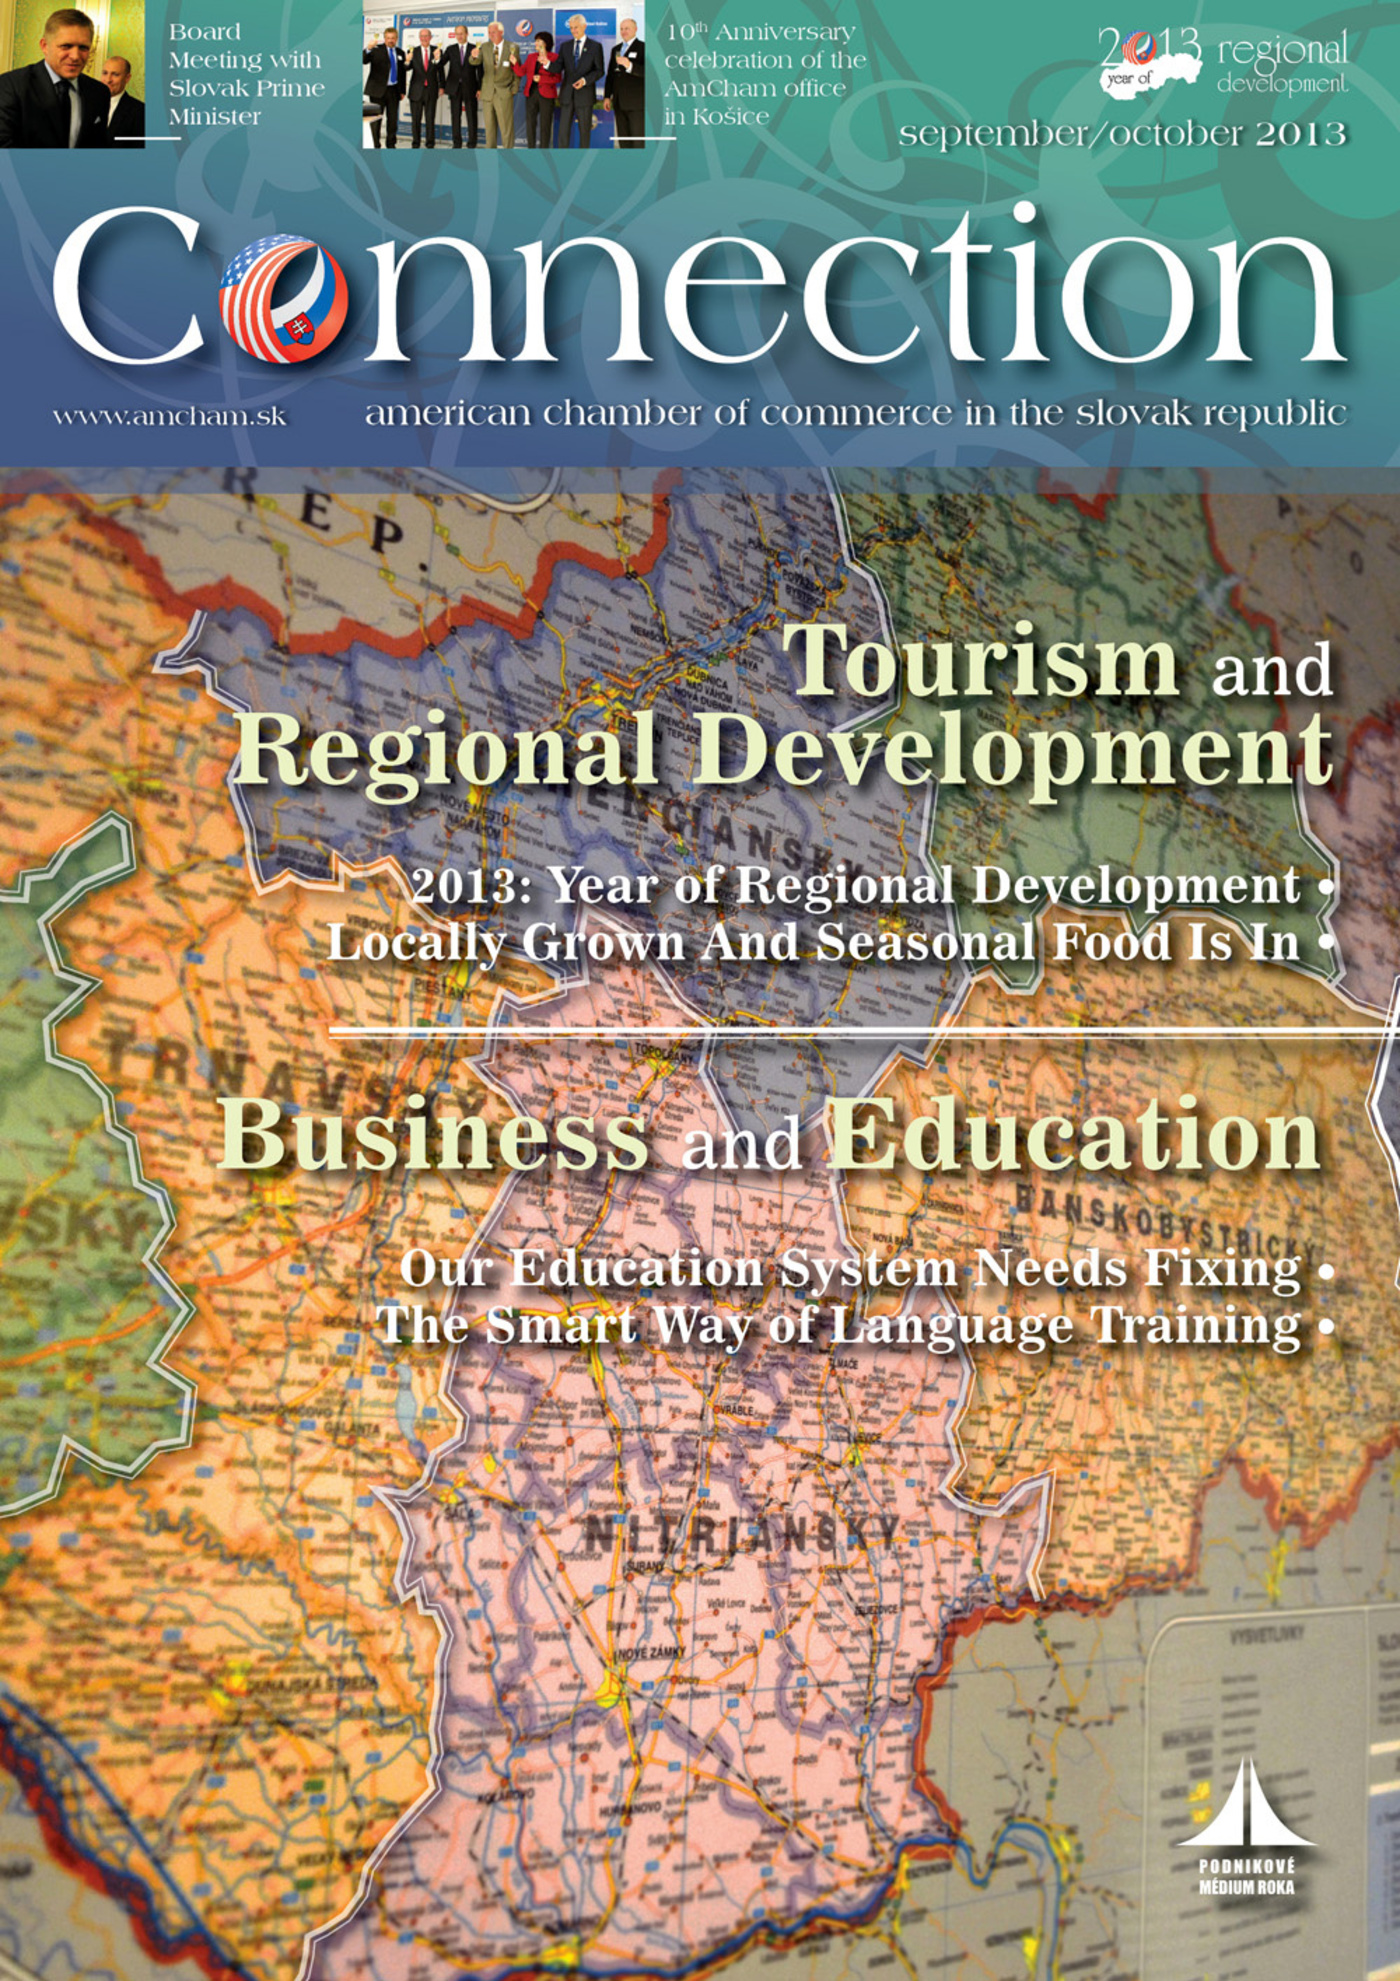 2013-09 / Tourism and Regional Development, Business and Education